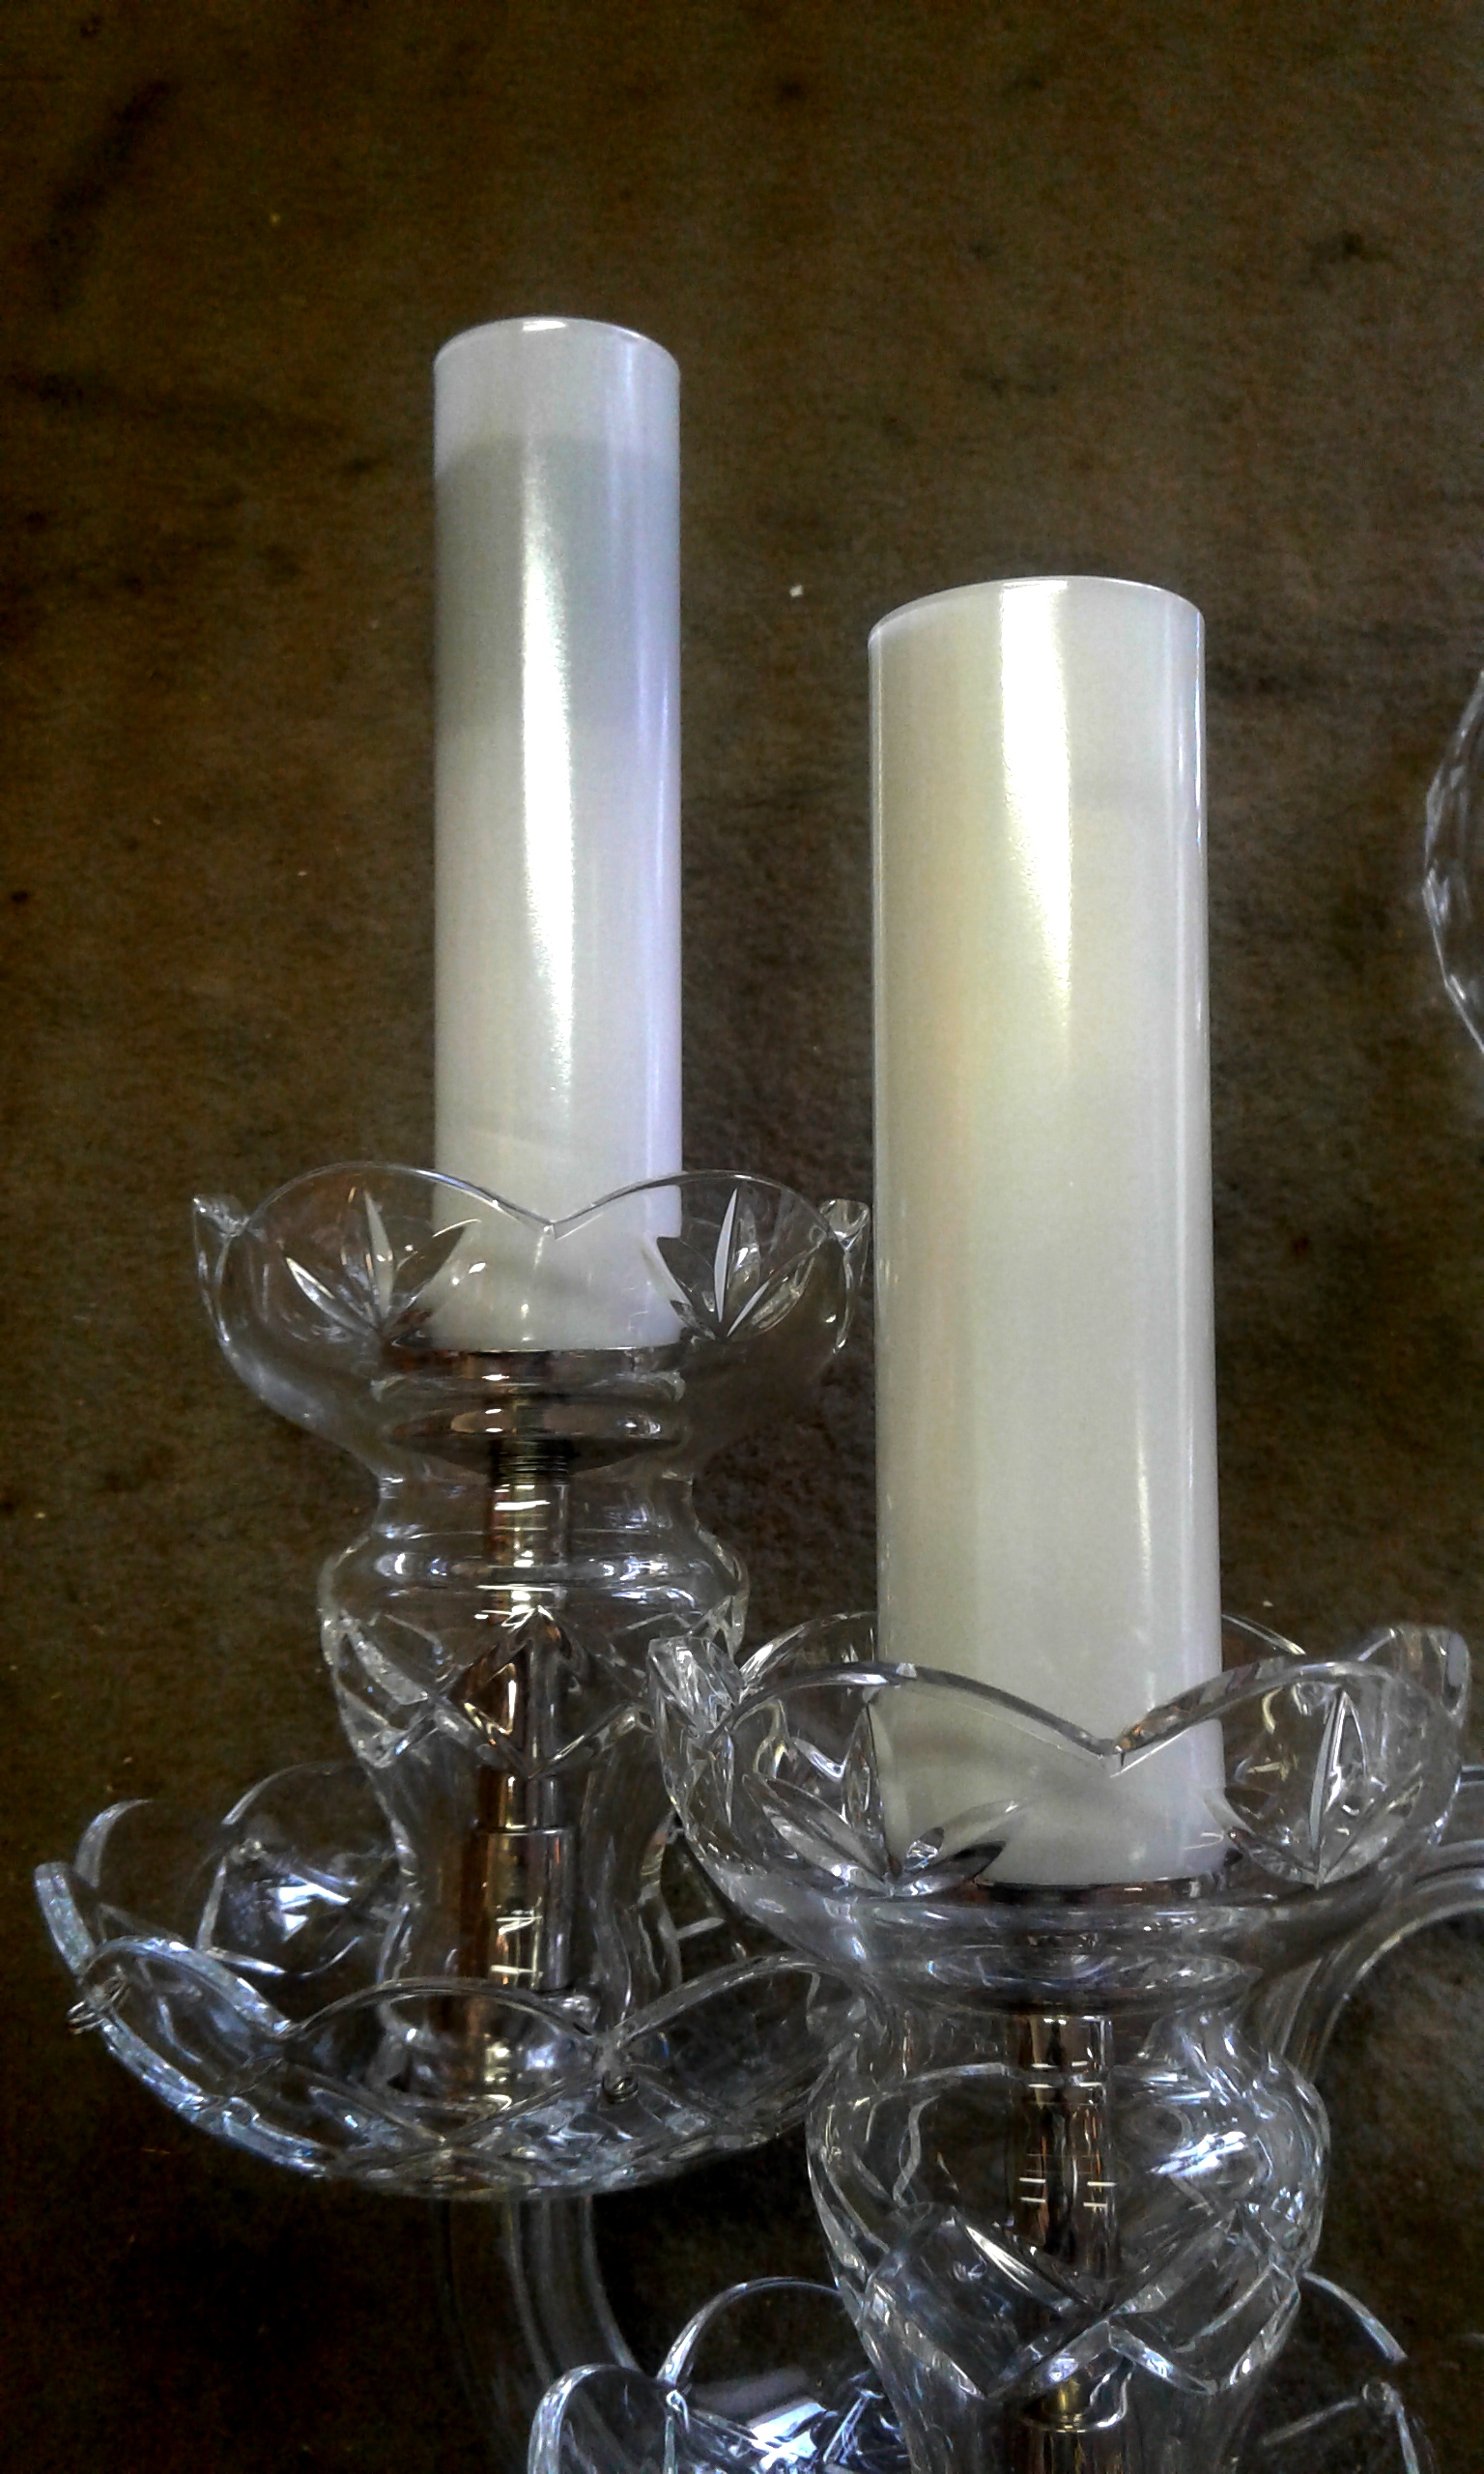 The milk glass covering tubes - optional dia 28 or 32 mm